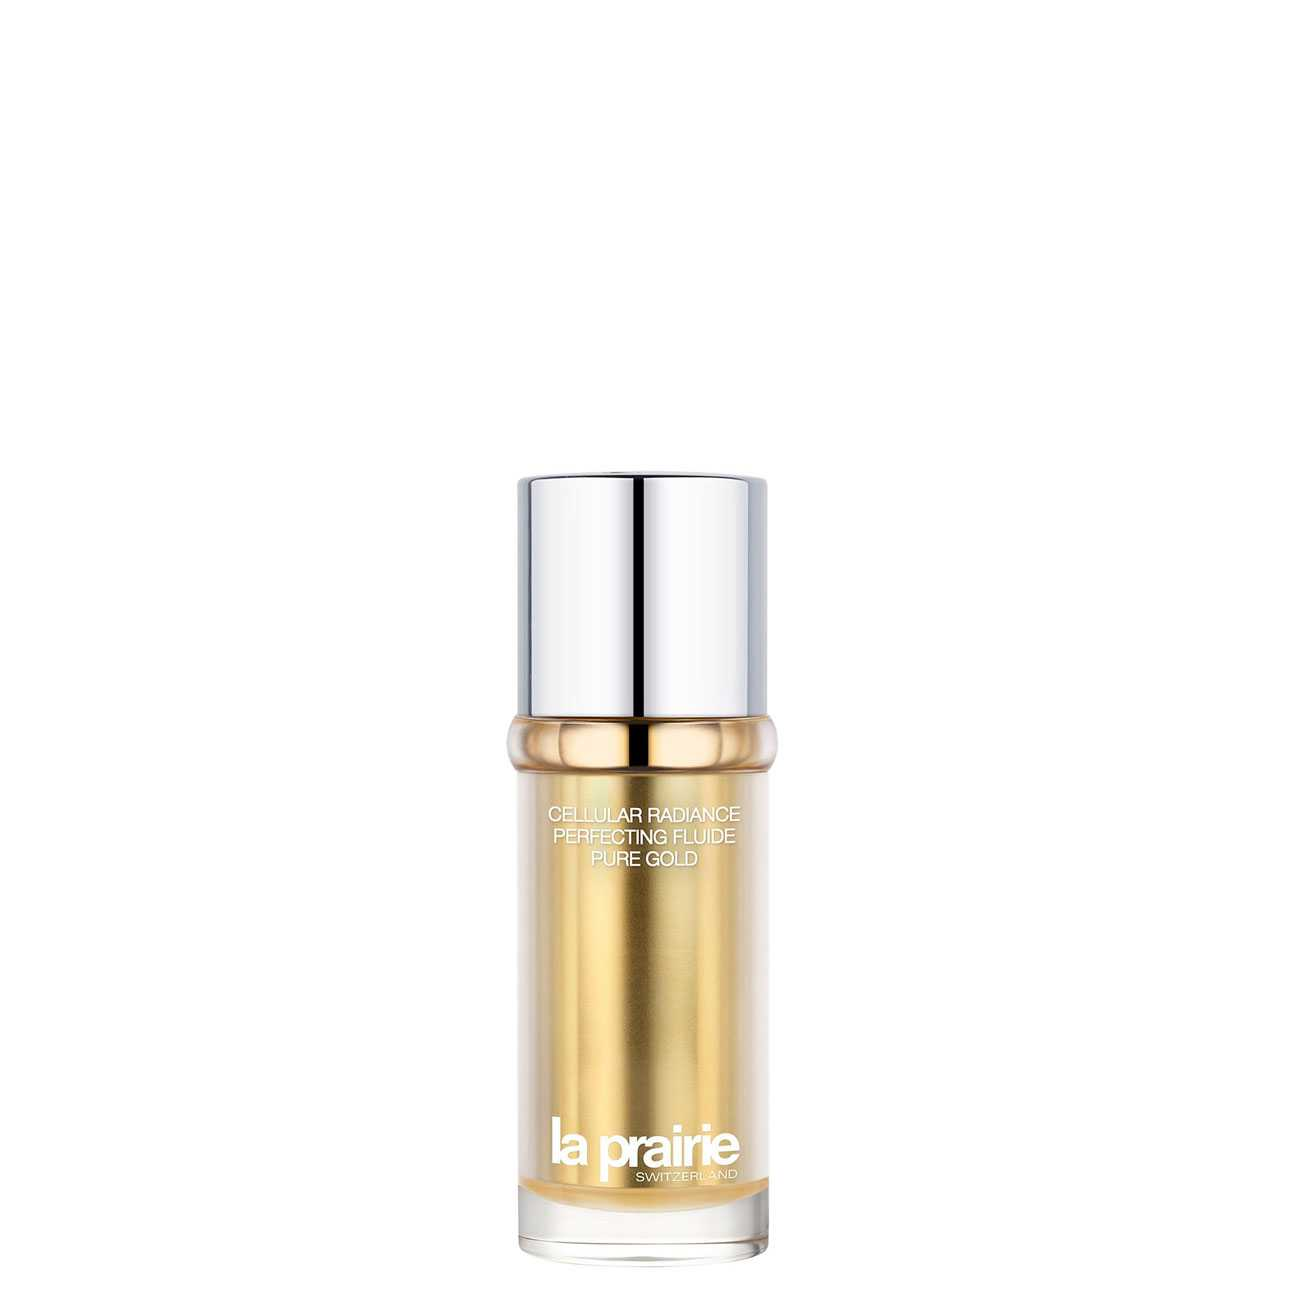 Cellular Radiance Perfecting Fluide Pure Gold 40 Ml La Prairie imagine 2021 bestvalue.eu